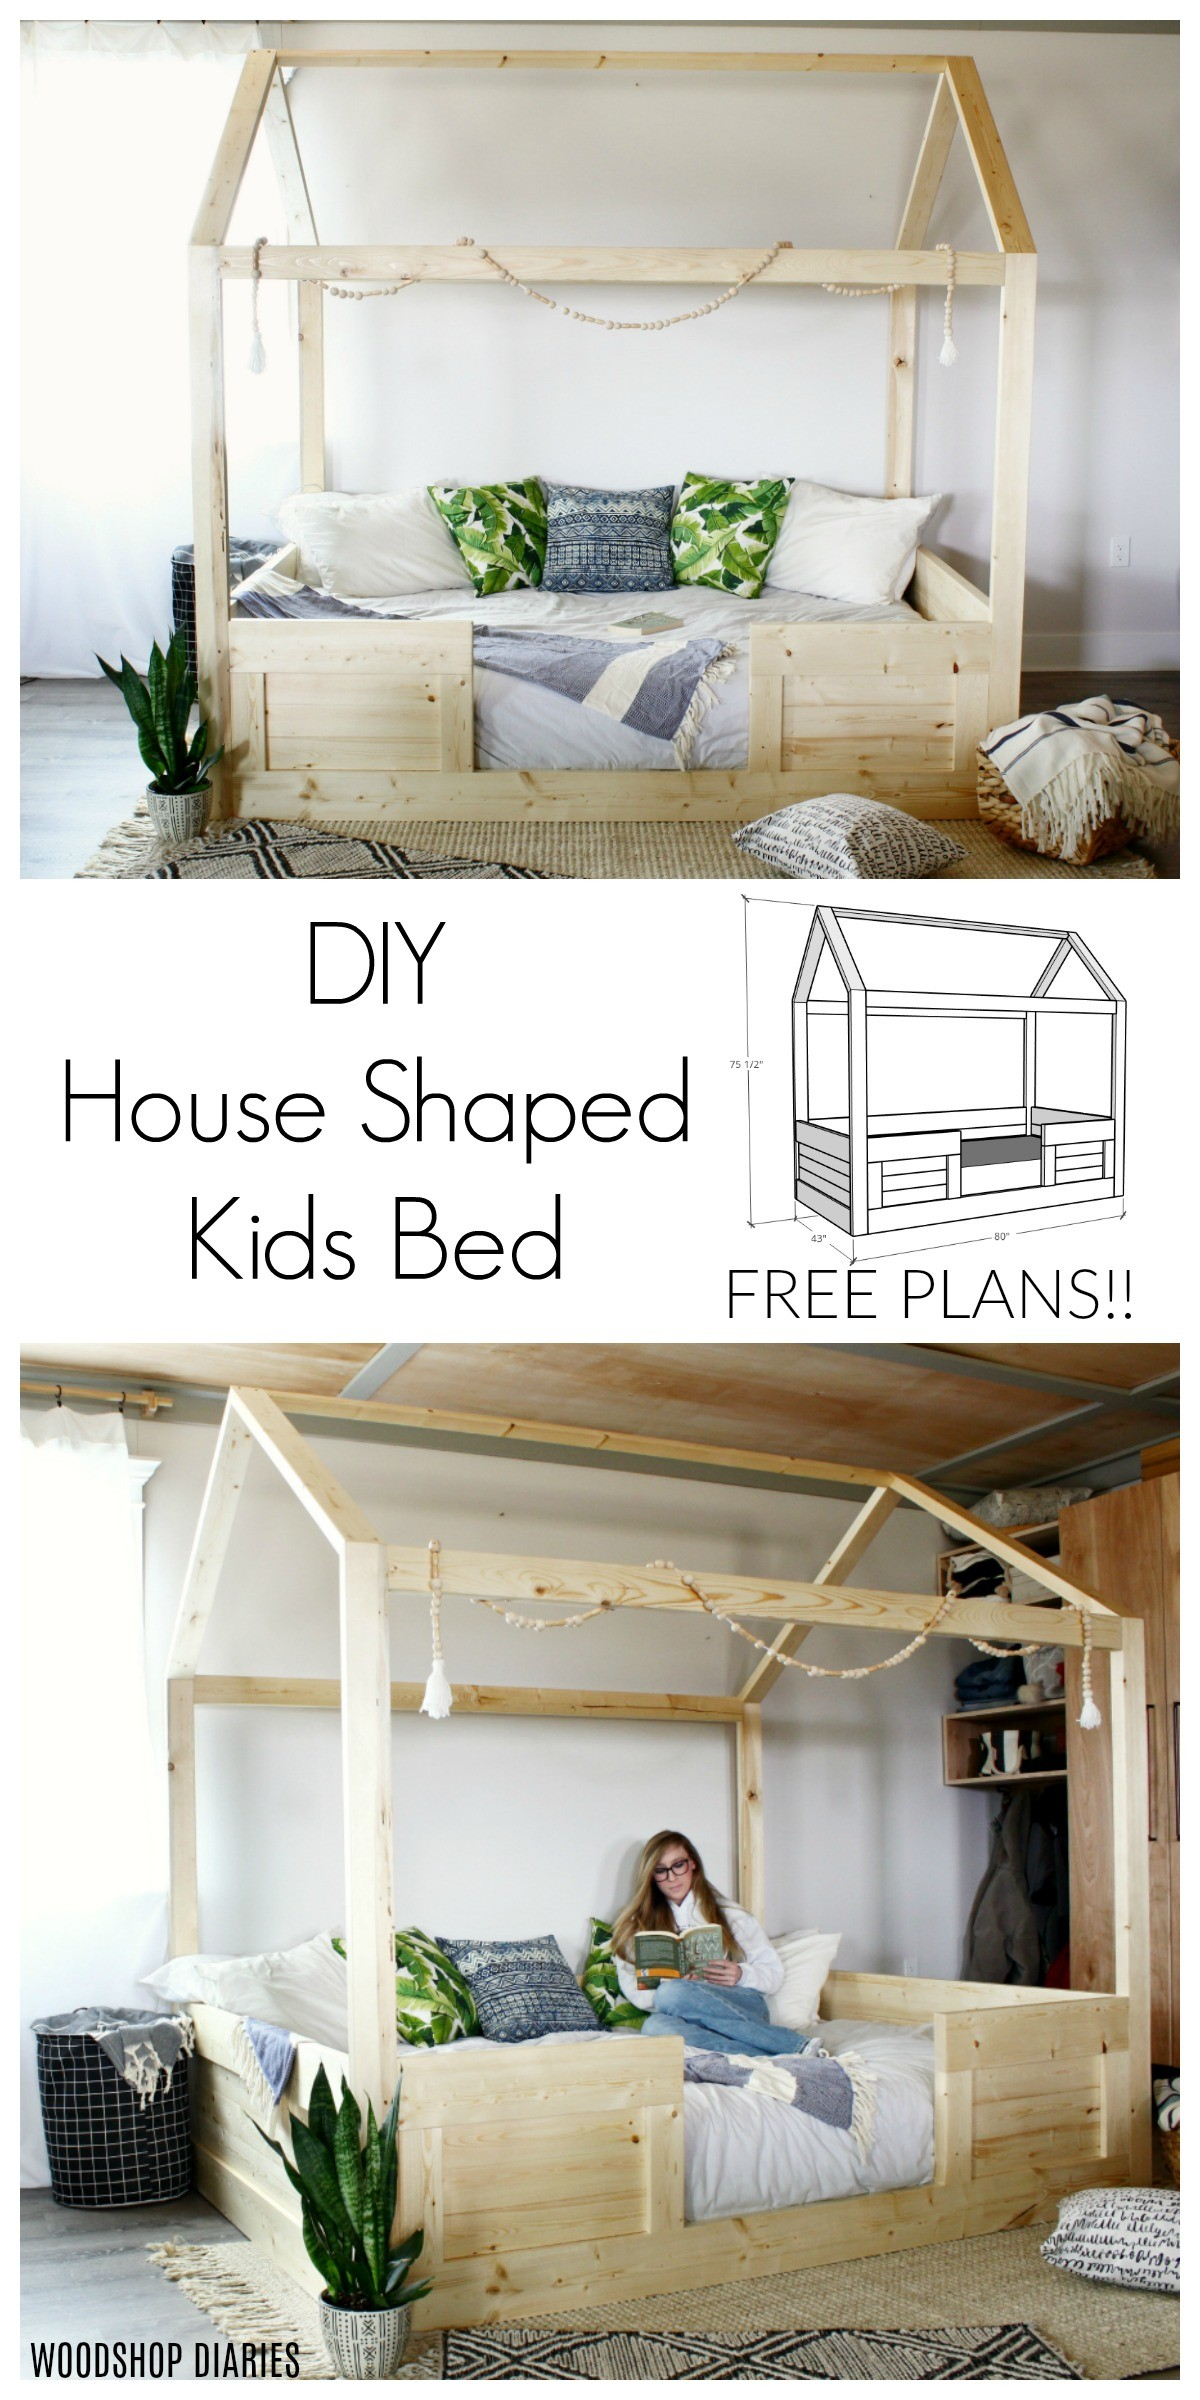 How to Build a DIY Kids House Bed Pinterest collage image